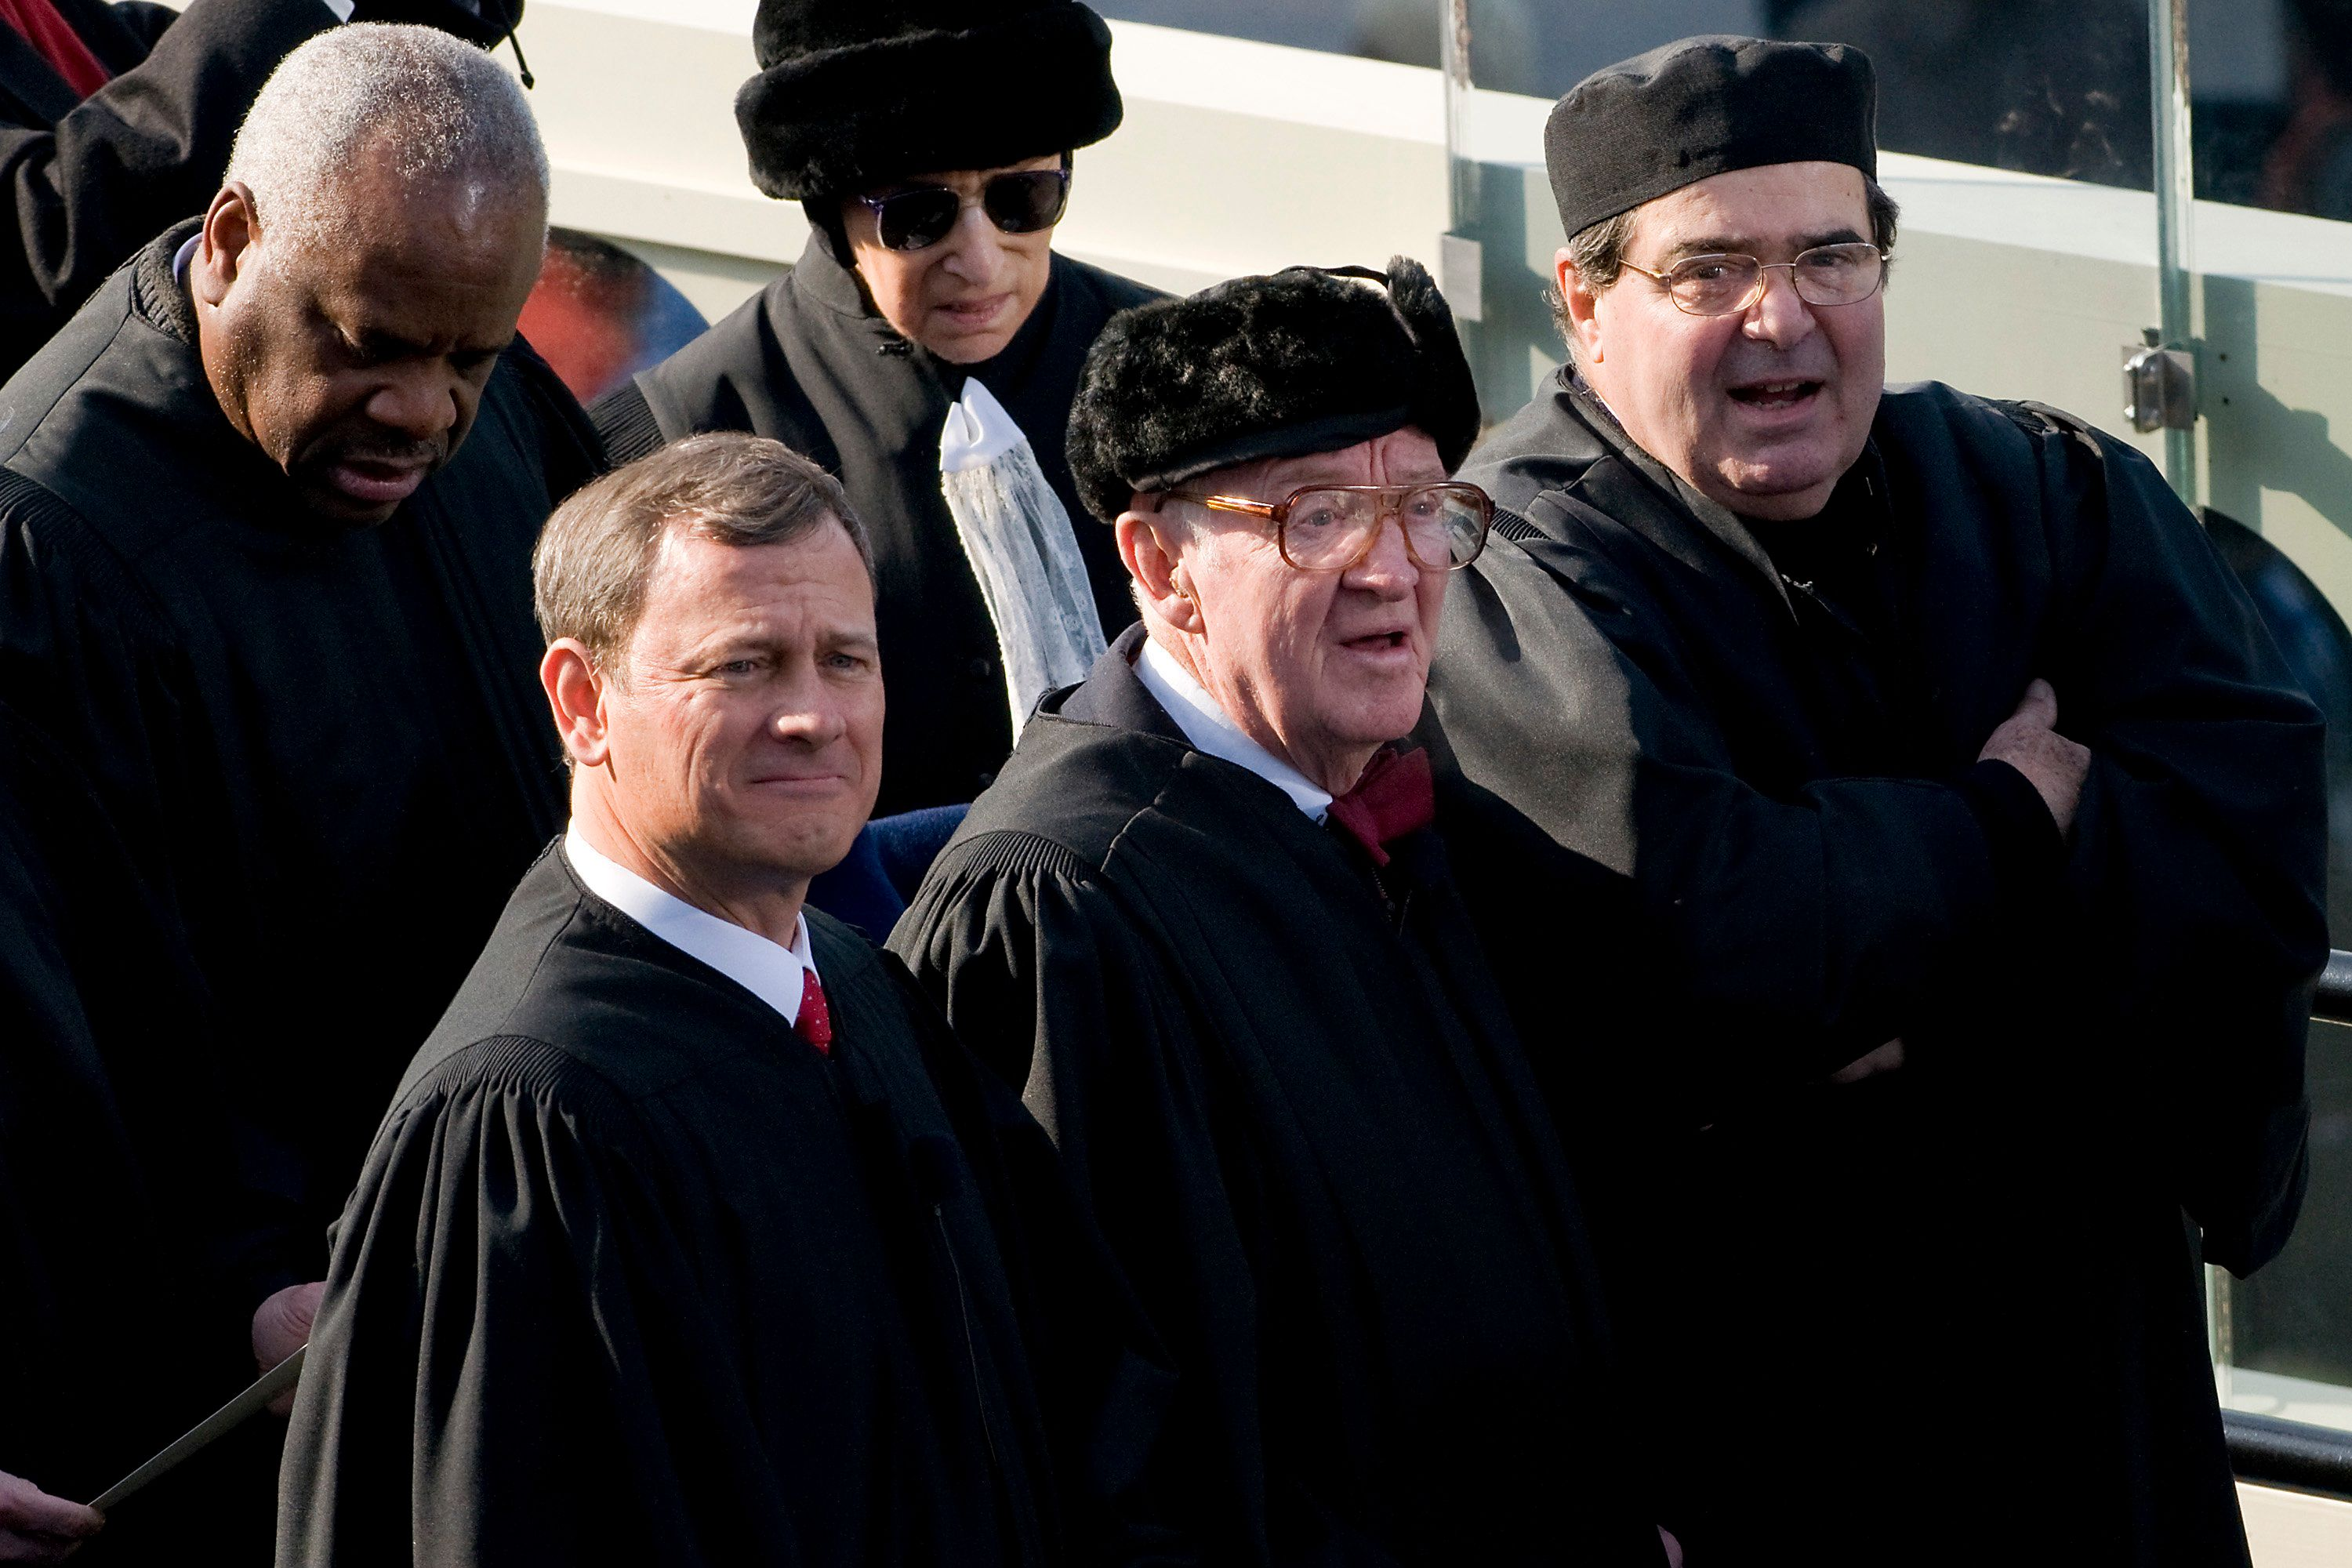 Stevens (center) attends the inauguration of President Barack Obama in 2009. Standing around him (clockwise from his immediat